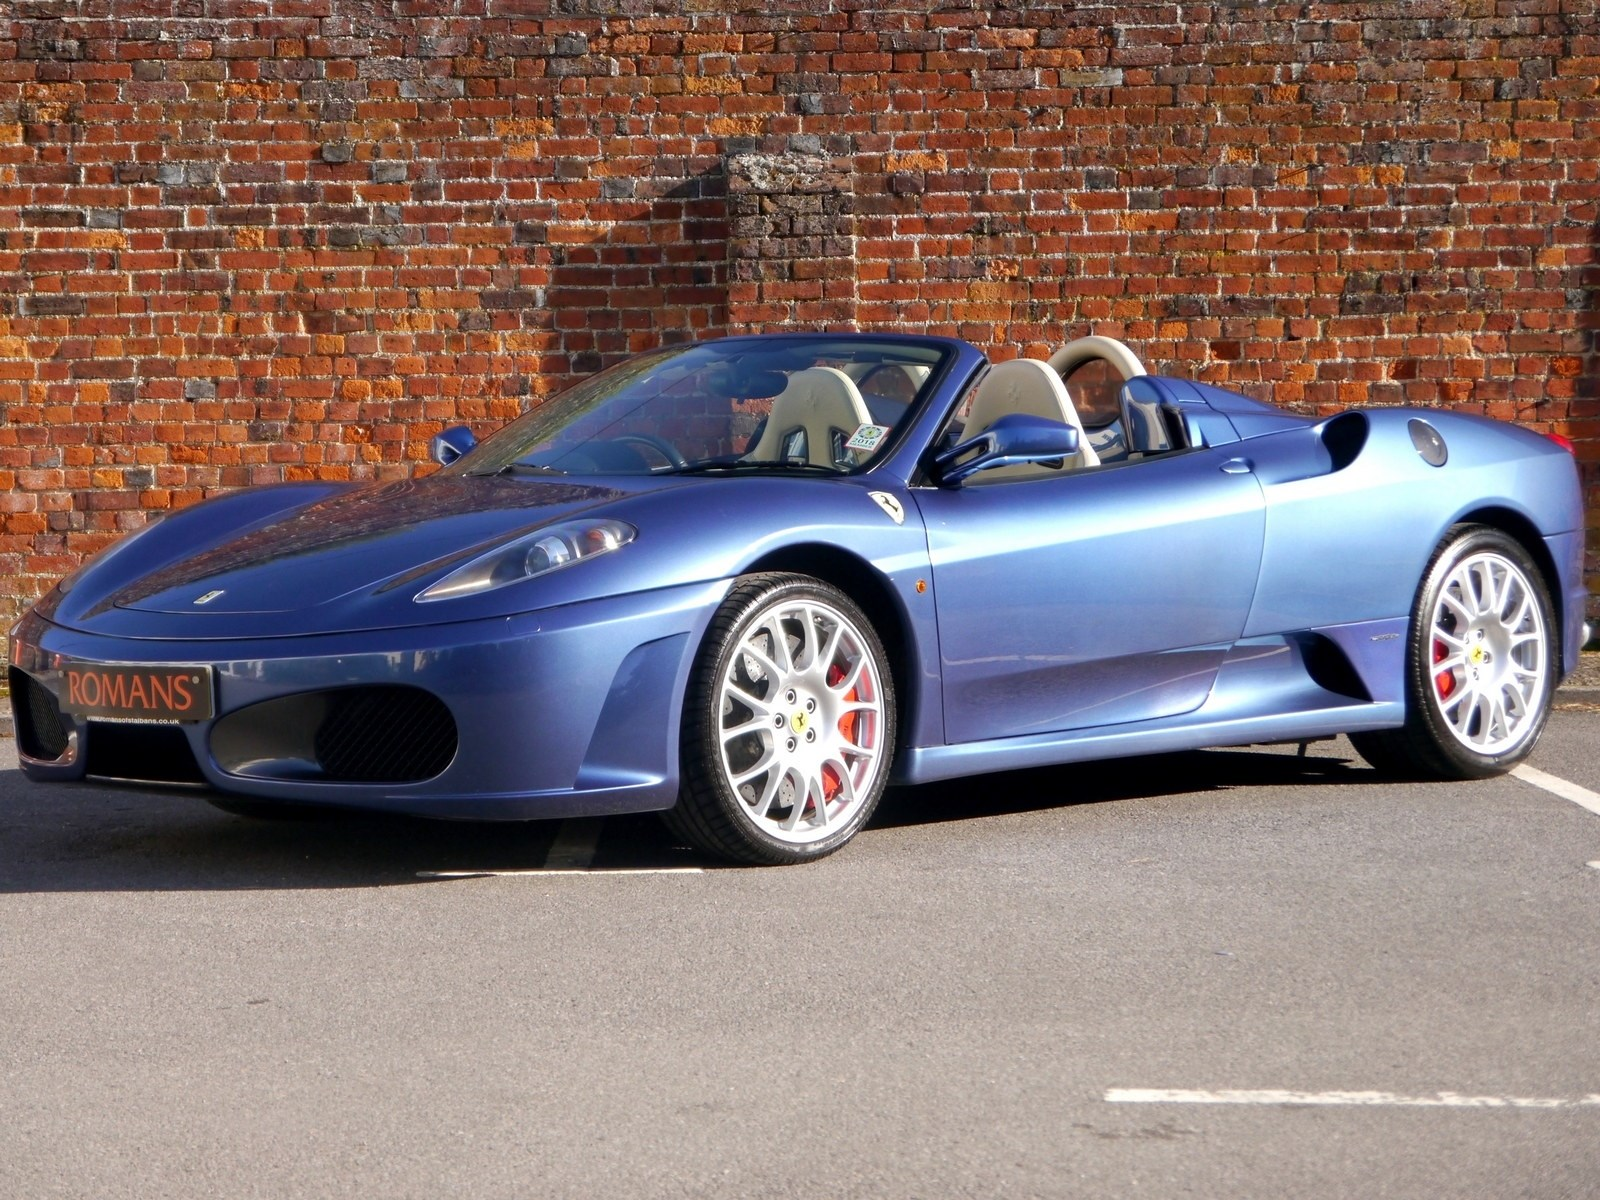 Ferrari F430 Spider F1 Ceramic Brakes Challenge Stradale Alloy Wheels Carbon Seats For Sale